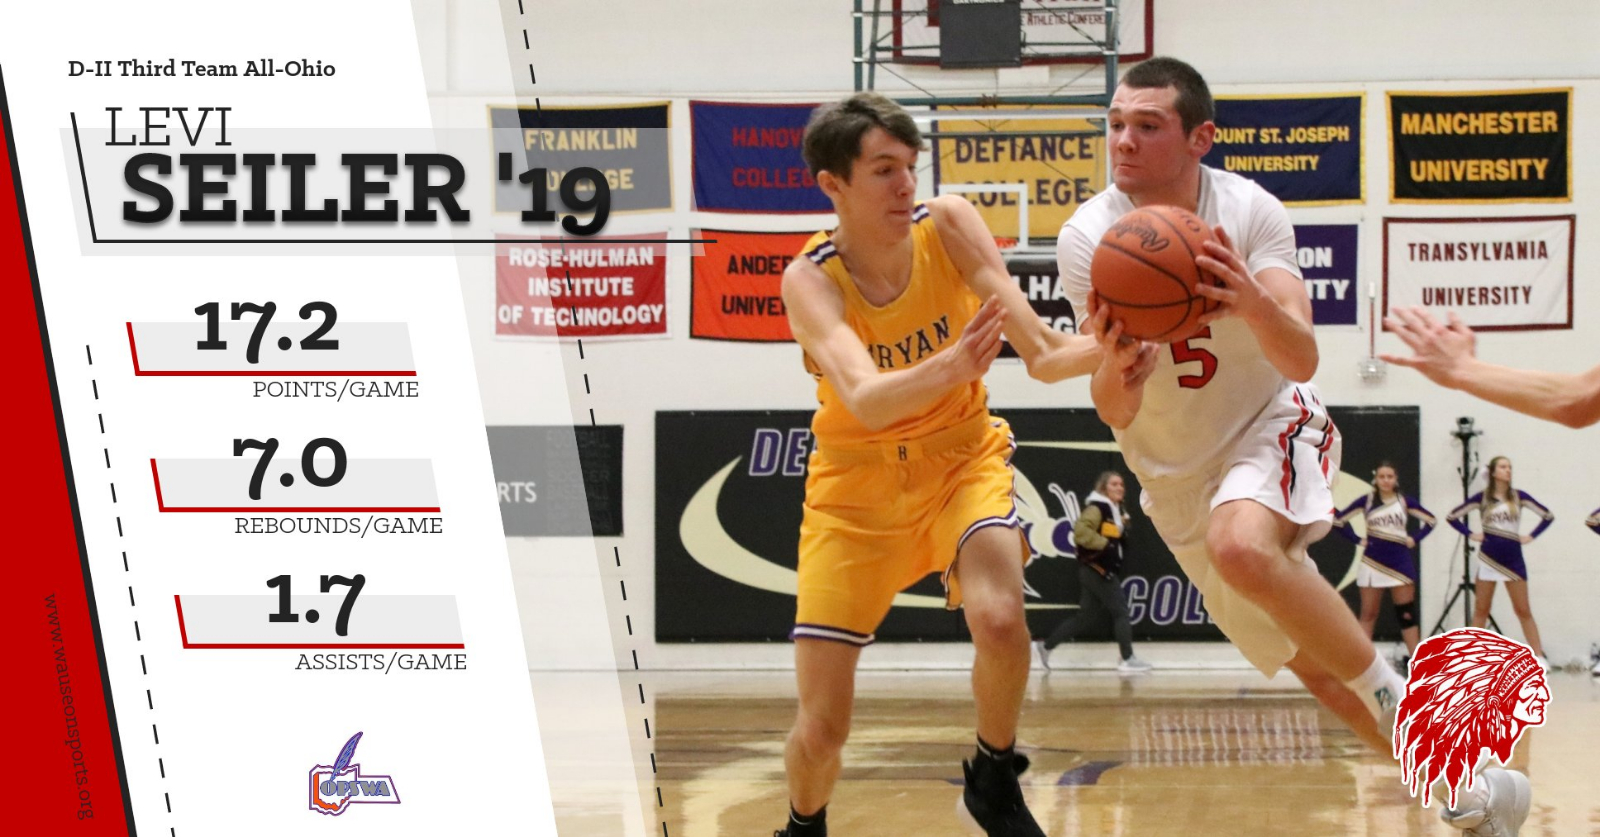 Levi Seiler named Third Team All-Ohio